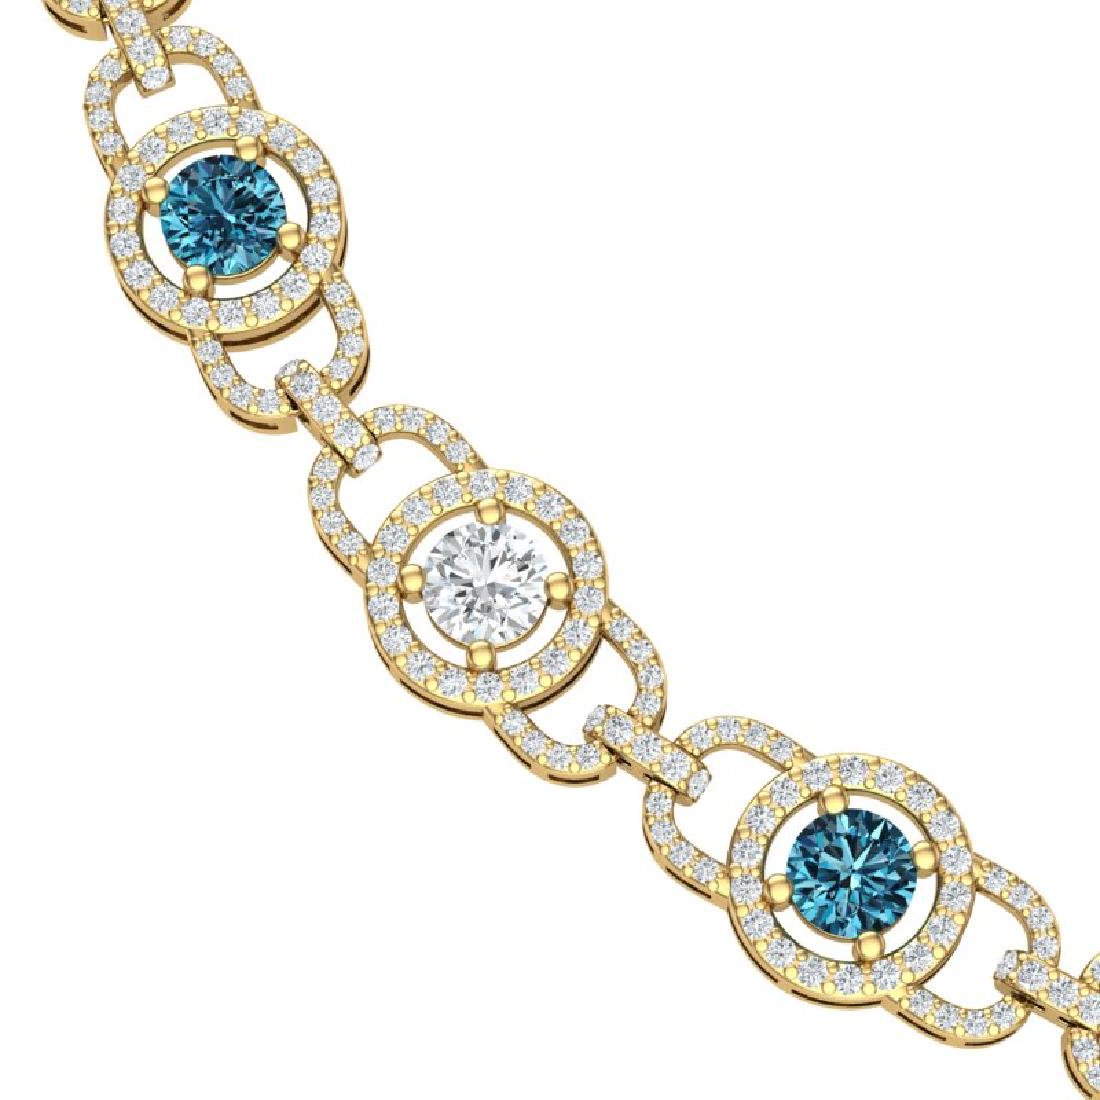 25 CTW SI/I Intense Blue And White Diamond Necklace 18K - 2